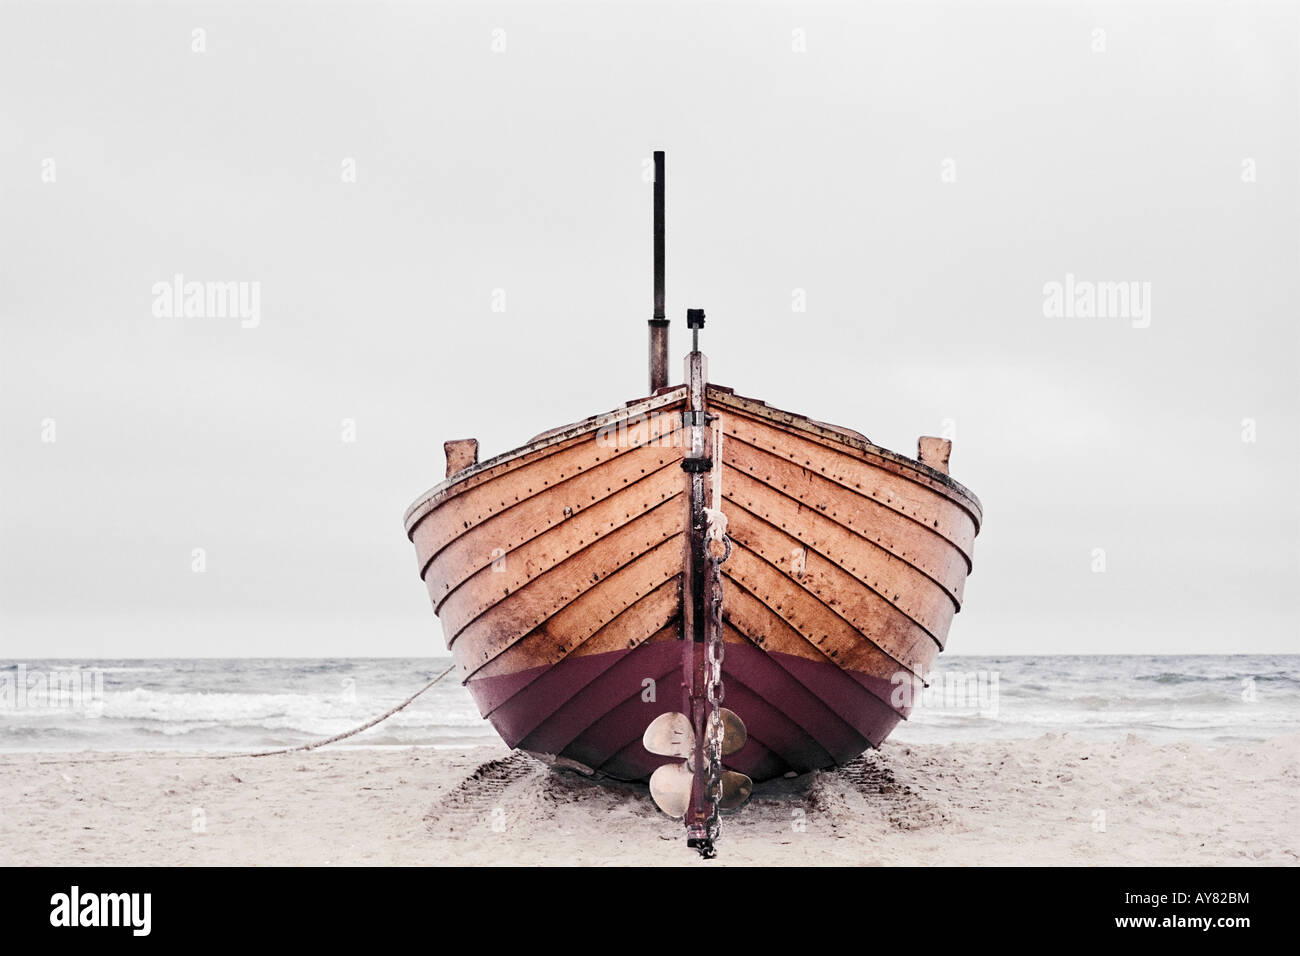 Wooden Fishing Boat On Beach - Stock Image